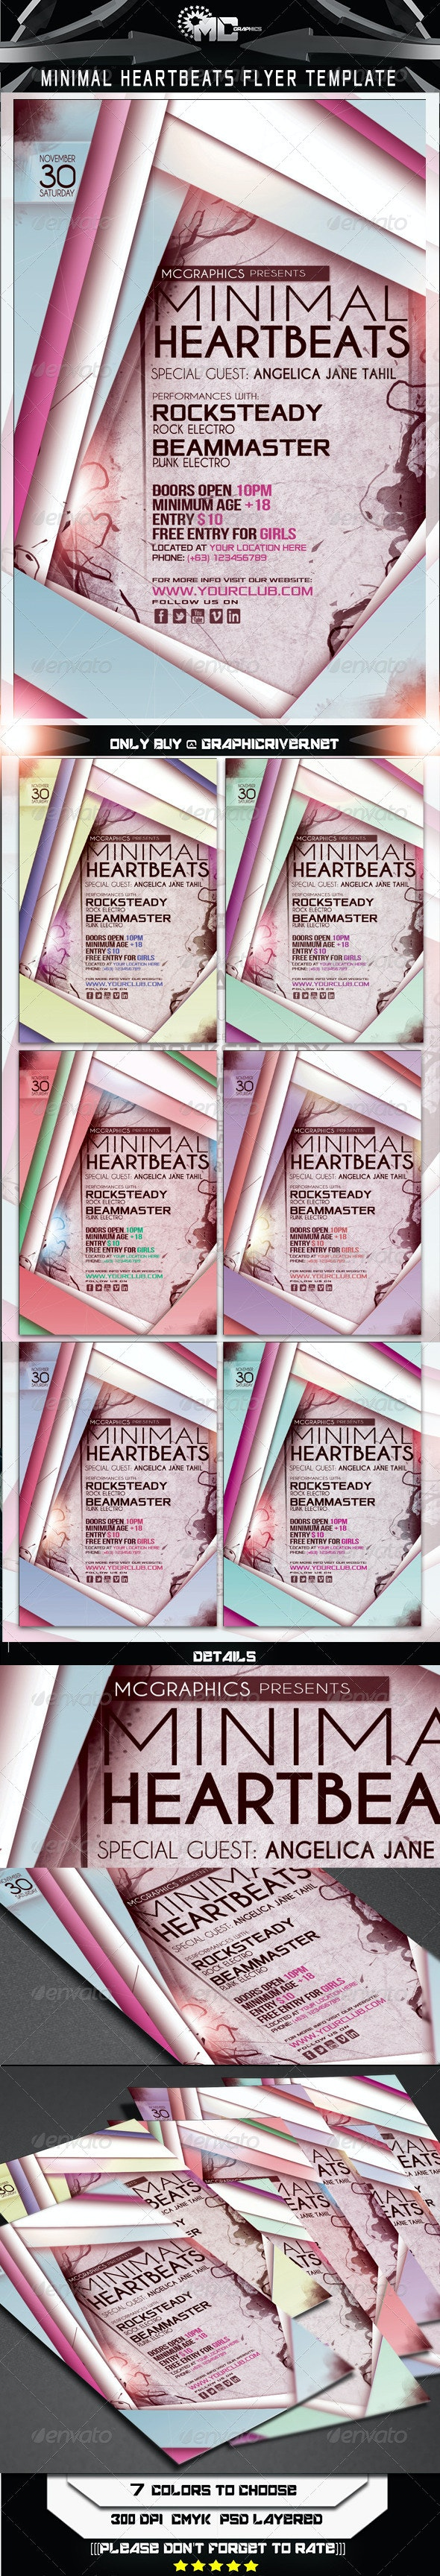 Minimal Heartbeats Flyer Template - Clubs & Parties Events